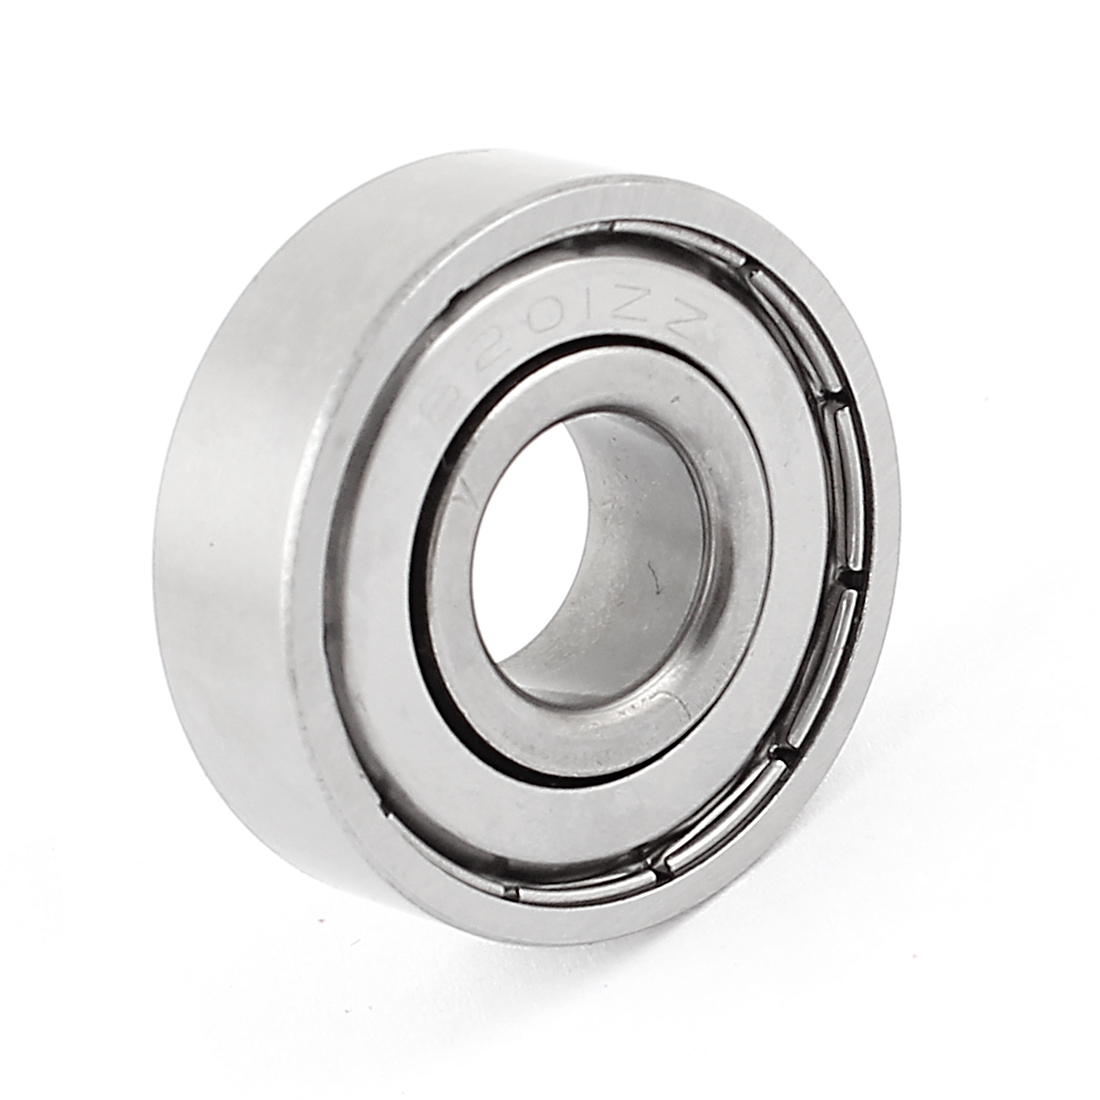 6201ZZ Metal Shielded Single Row Deep Groove Ball Bearing 10mm x 12mm x 32mm